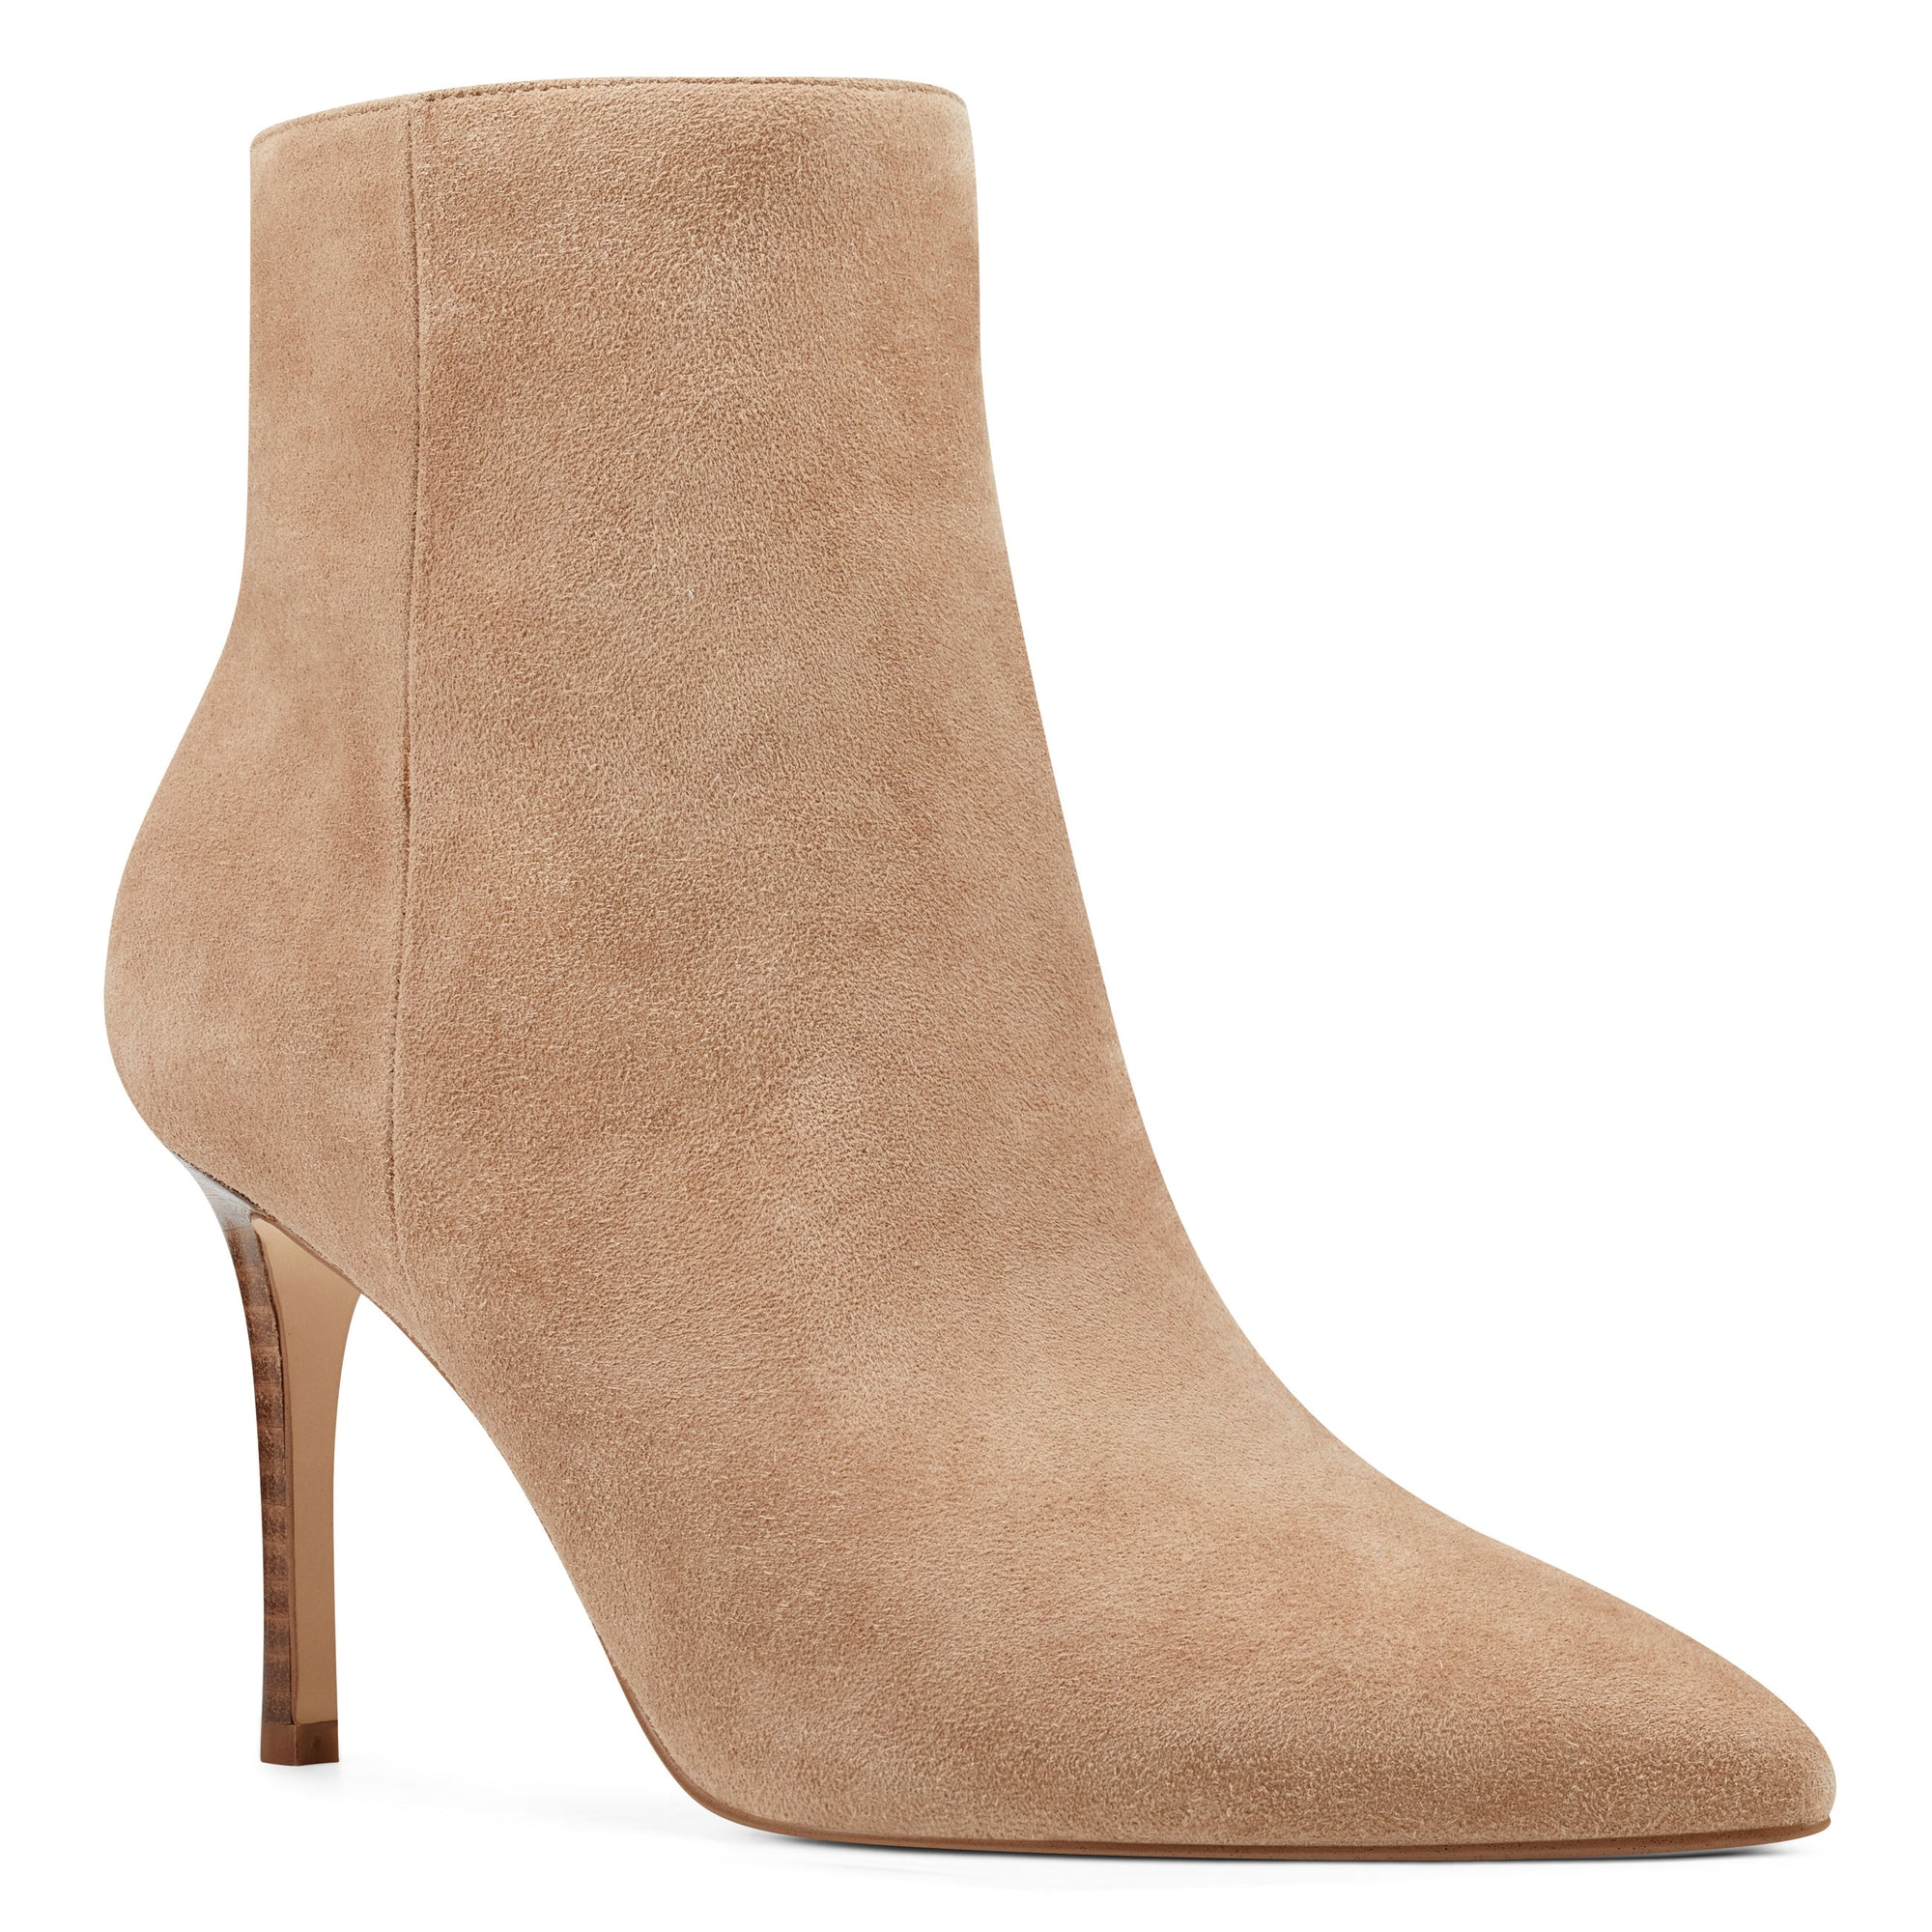 Fhayla Pointy Toe Booties - Nine West